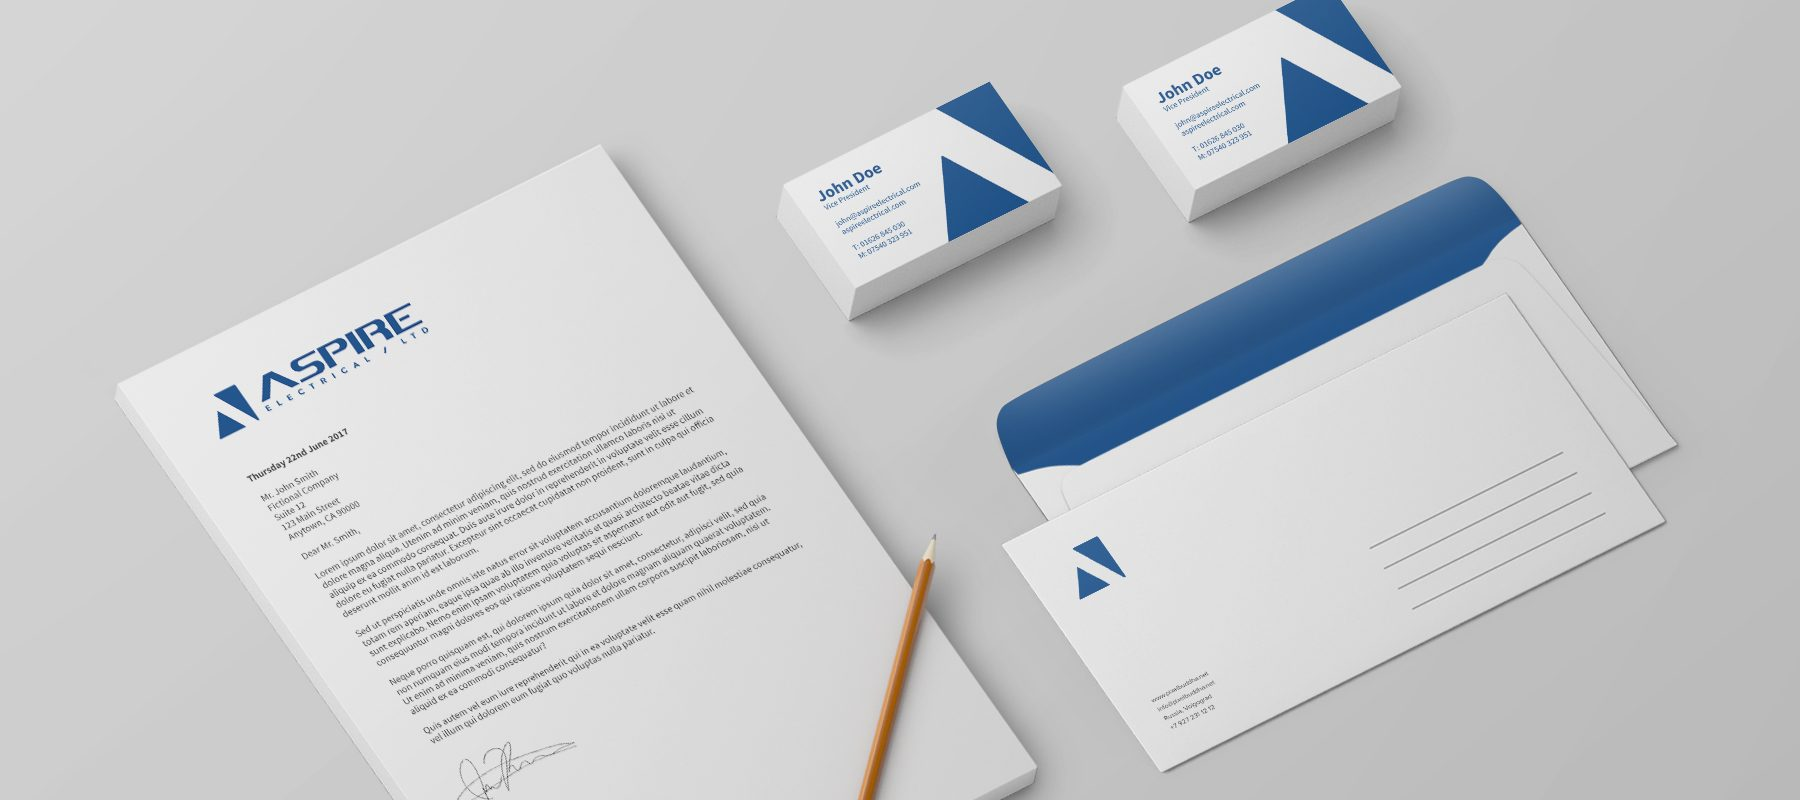 branded stationery mockup aspire electrical graphic print design